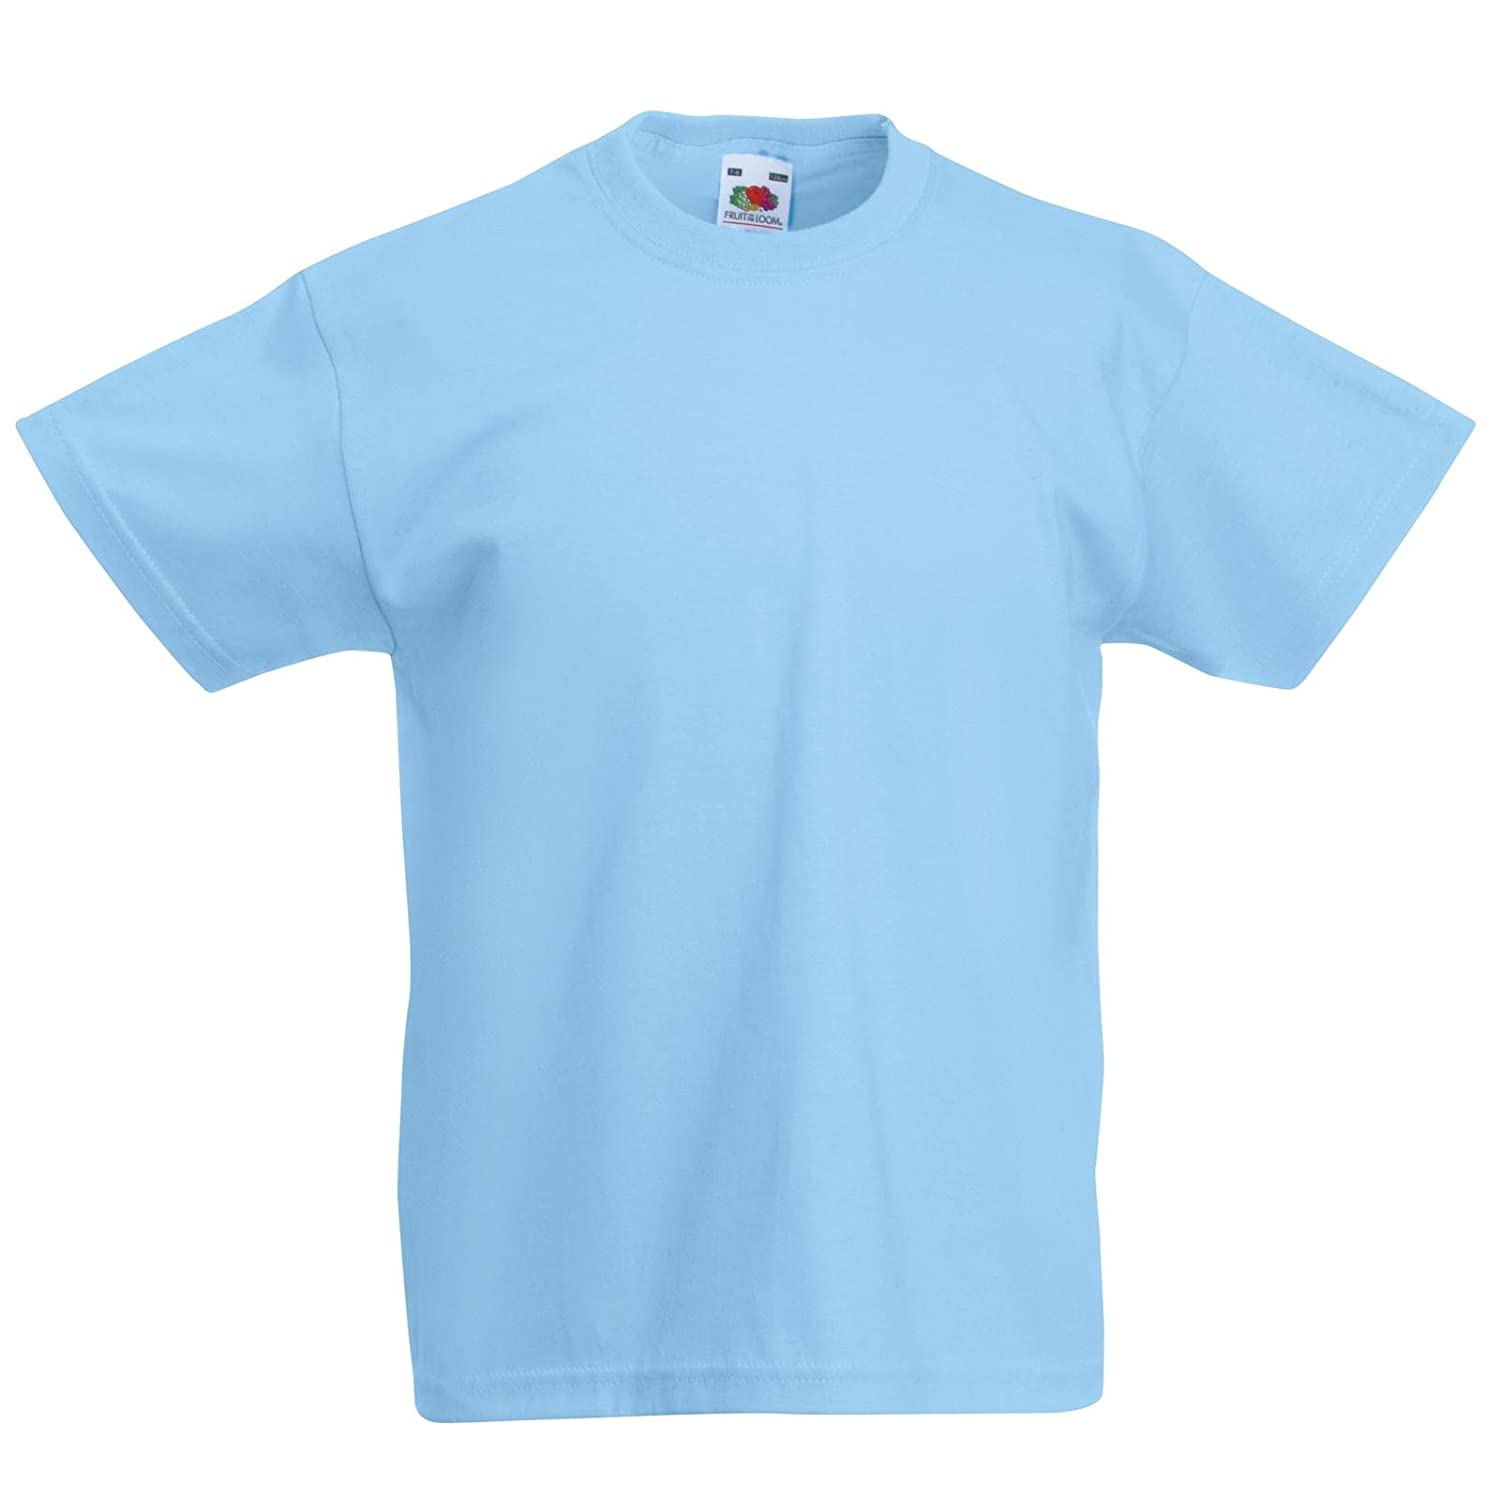 f858ce860 New Fruit of the Loom Childrens Kids Value Cotton T Shirt: Amazon.co.uk:  Clothing